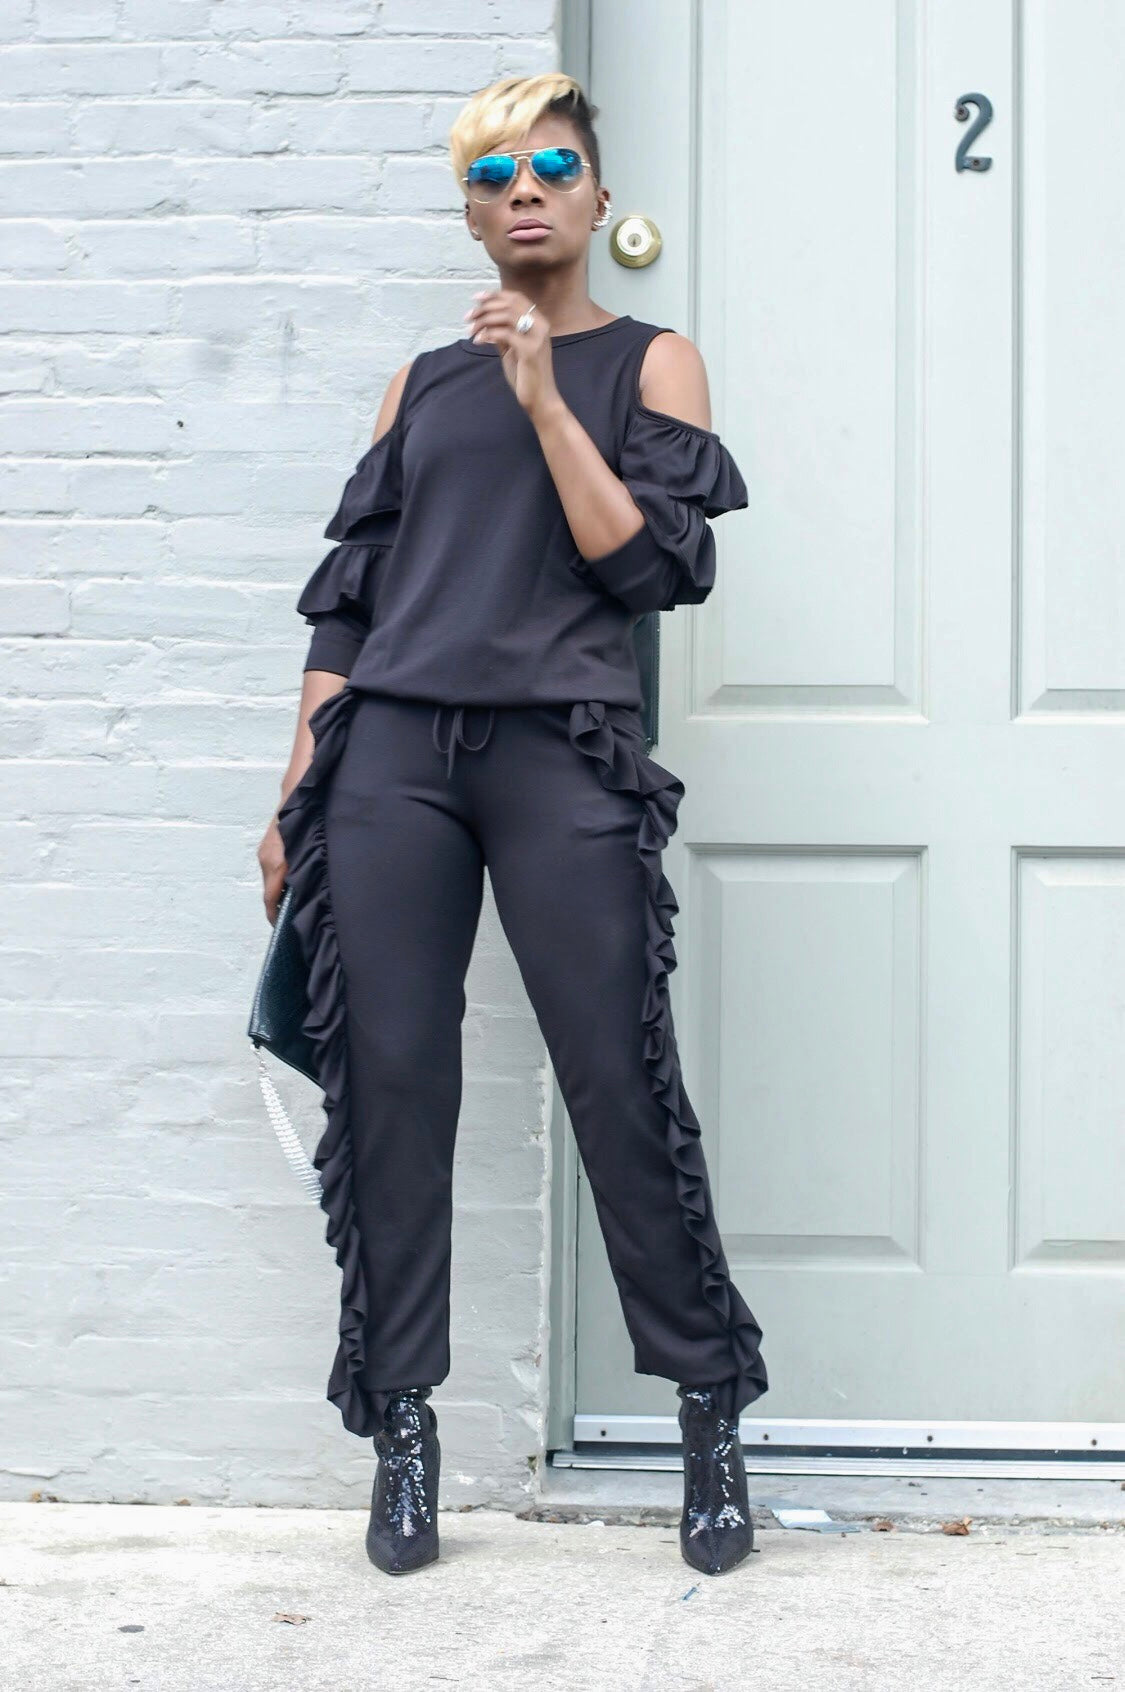 Black Ruffled Sweatsuit